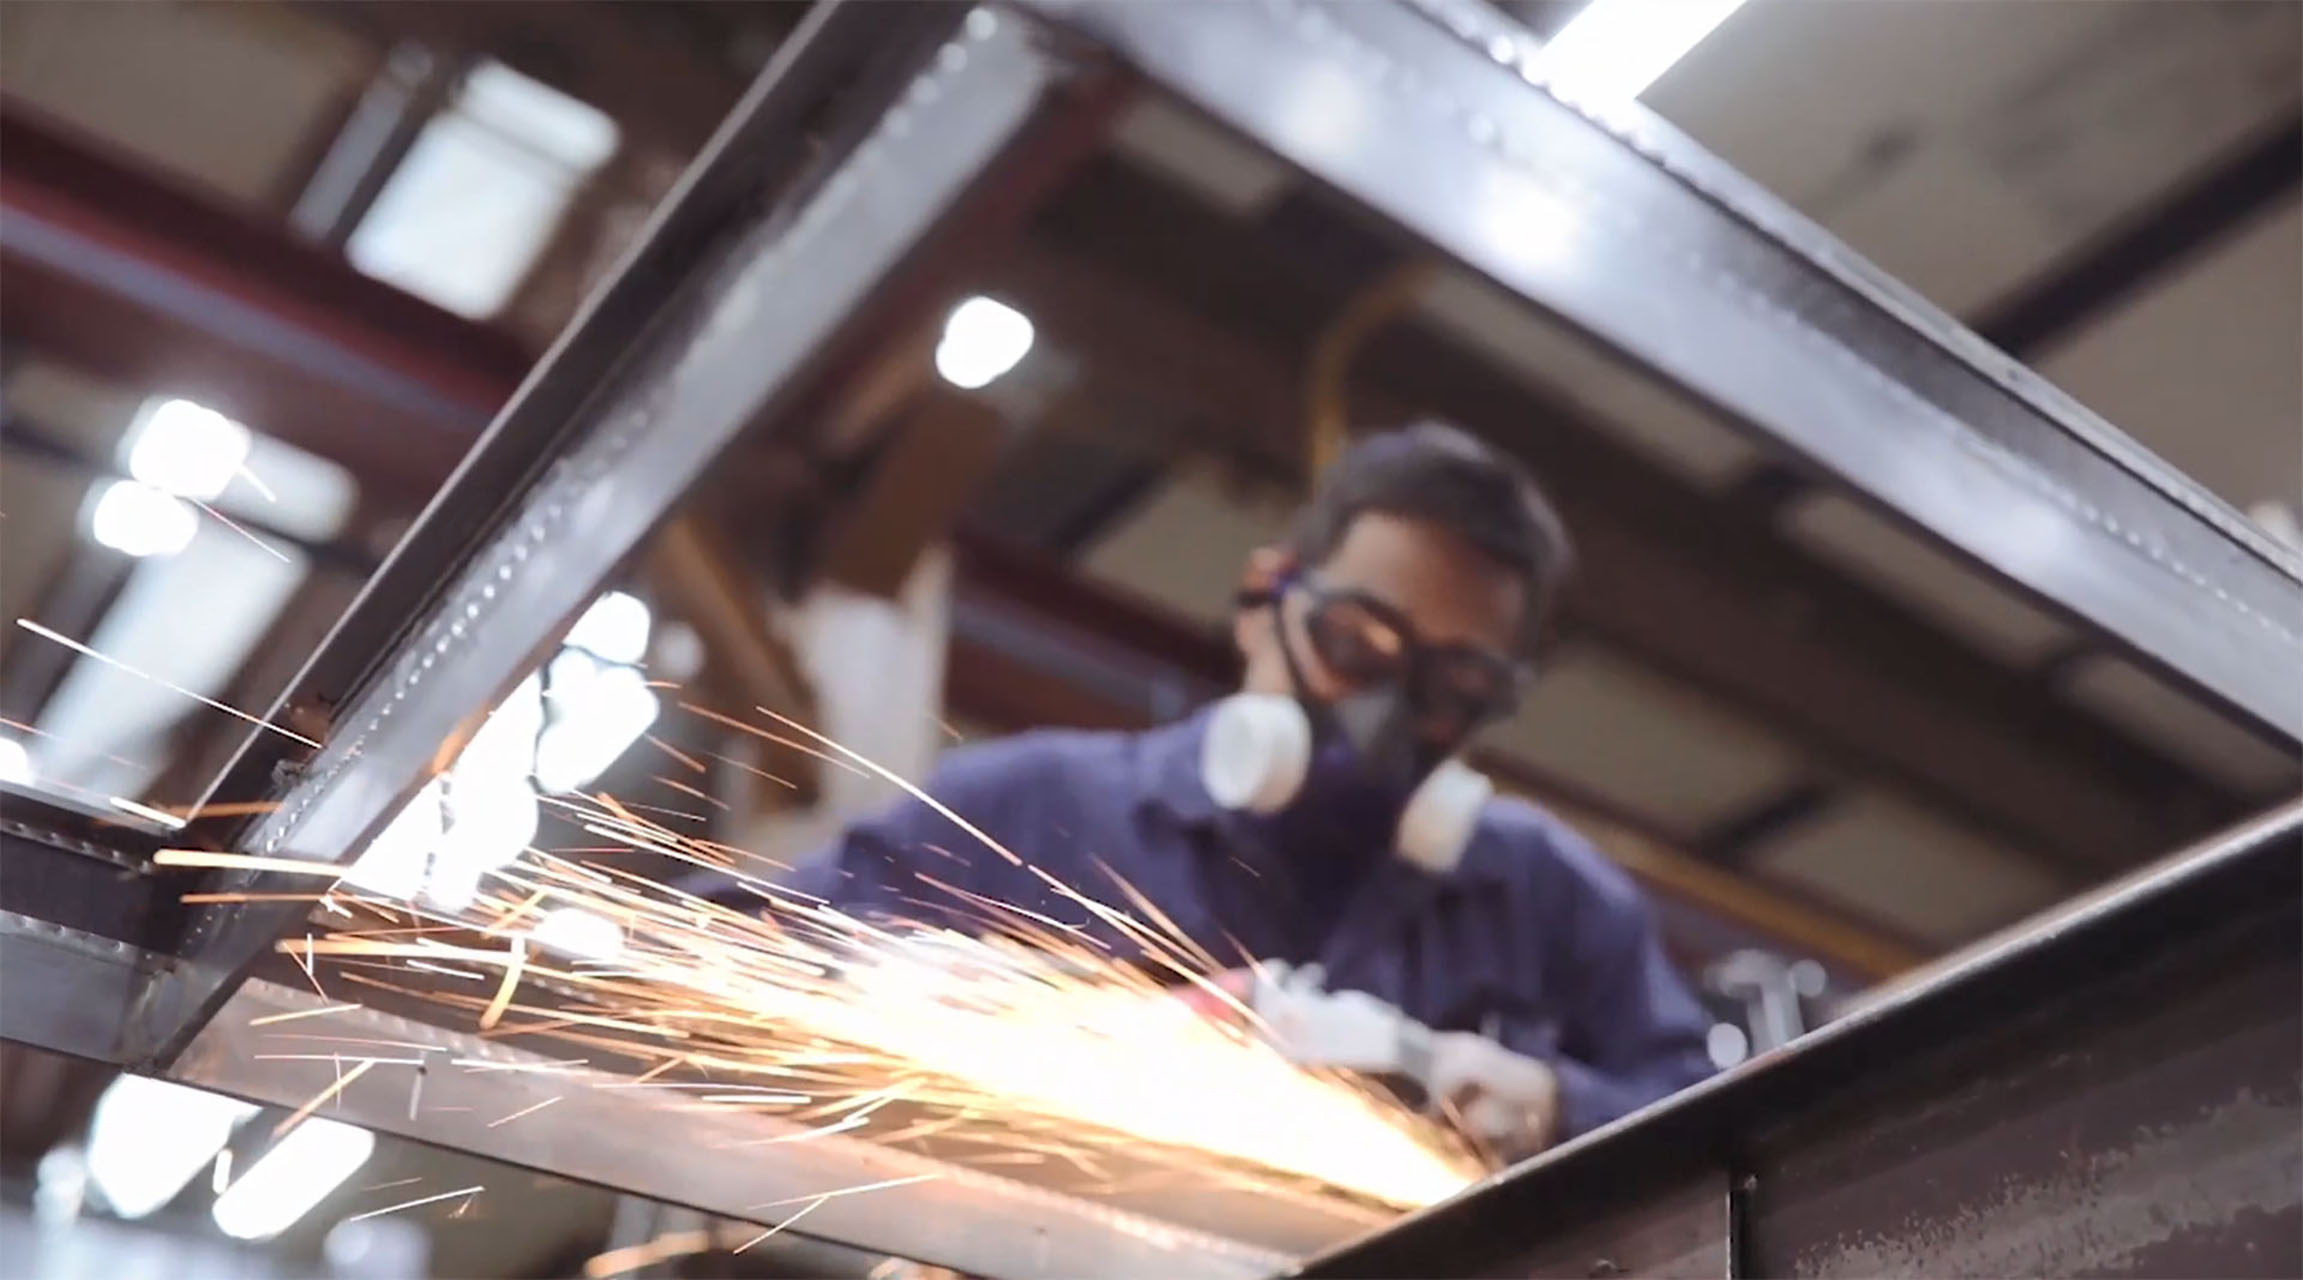 MHB crafstman welding an SL30-ISO profile system at Herveld the Netherlands